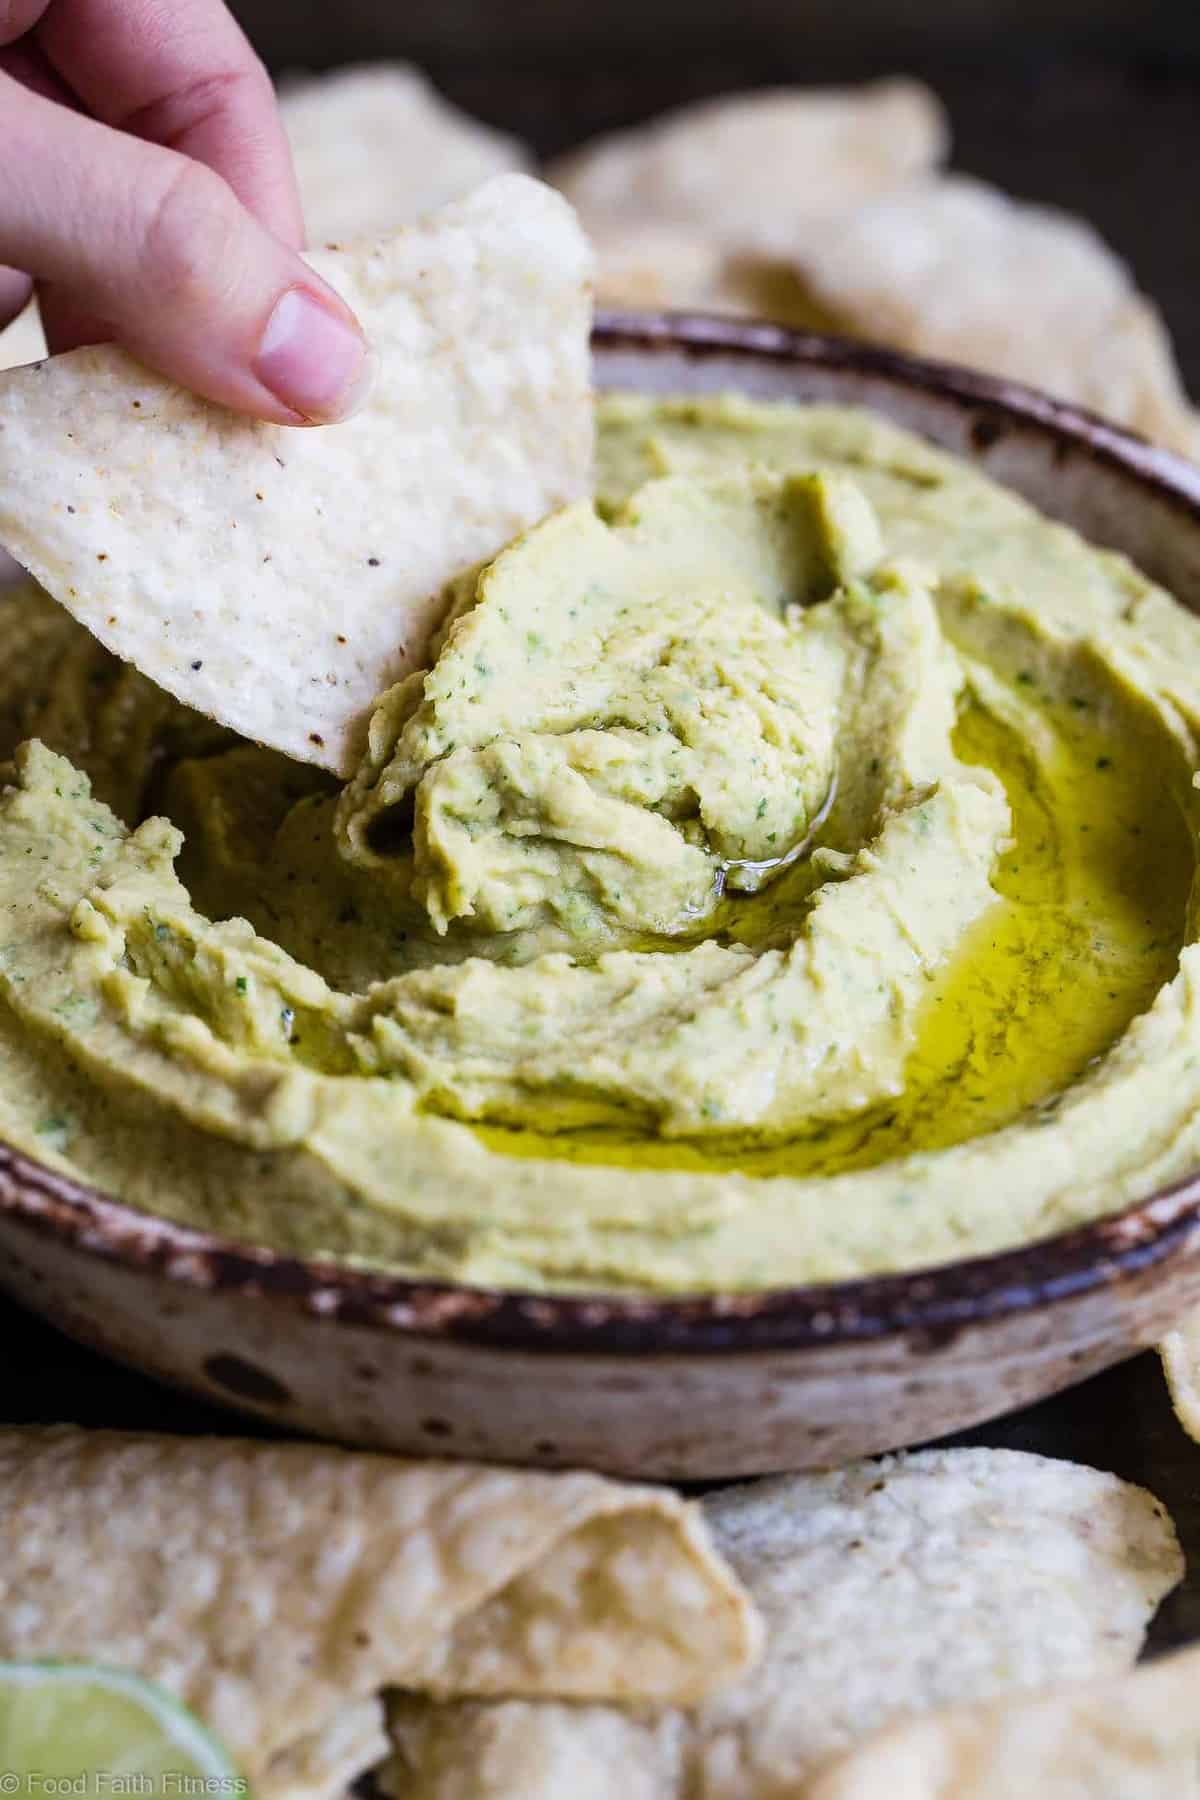 Cilantro Lime Jalapeno Hummus - This spicy, ADDICTING homemade hummus doesn't use tahini! Perfect for snacks, or spreading on a sandwich and gluten free, vegan and 0 Weight Watchers Freestlye Points! | #Foodfaithfitness | #Vegan #Glutenfree #Healthy #Dairyfree #Hummus